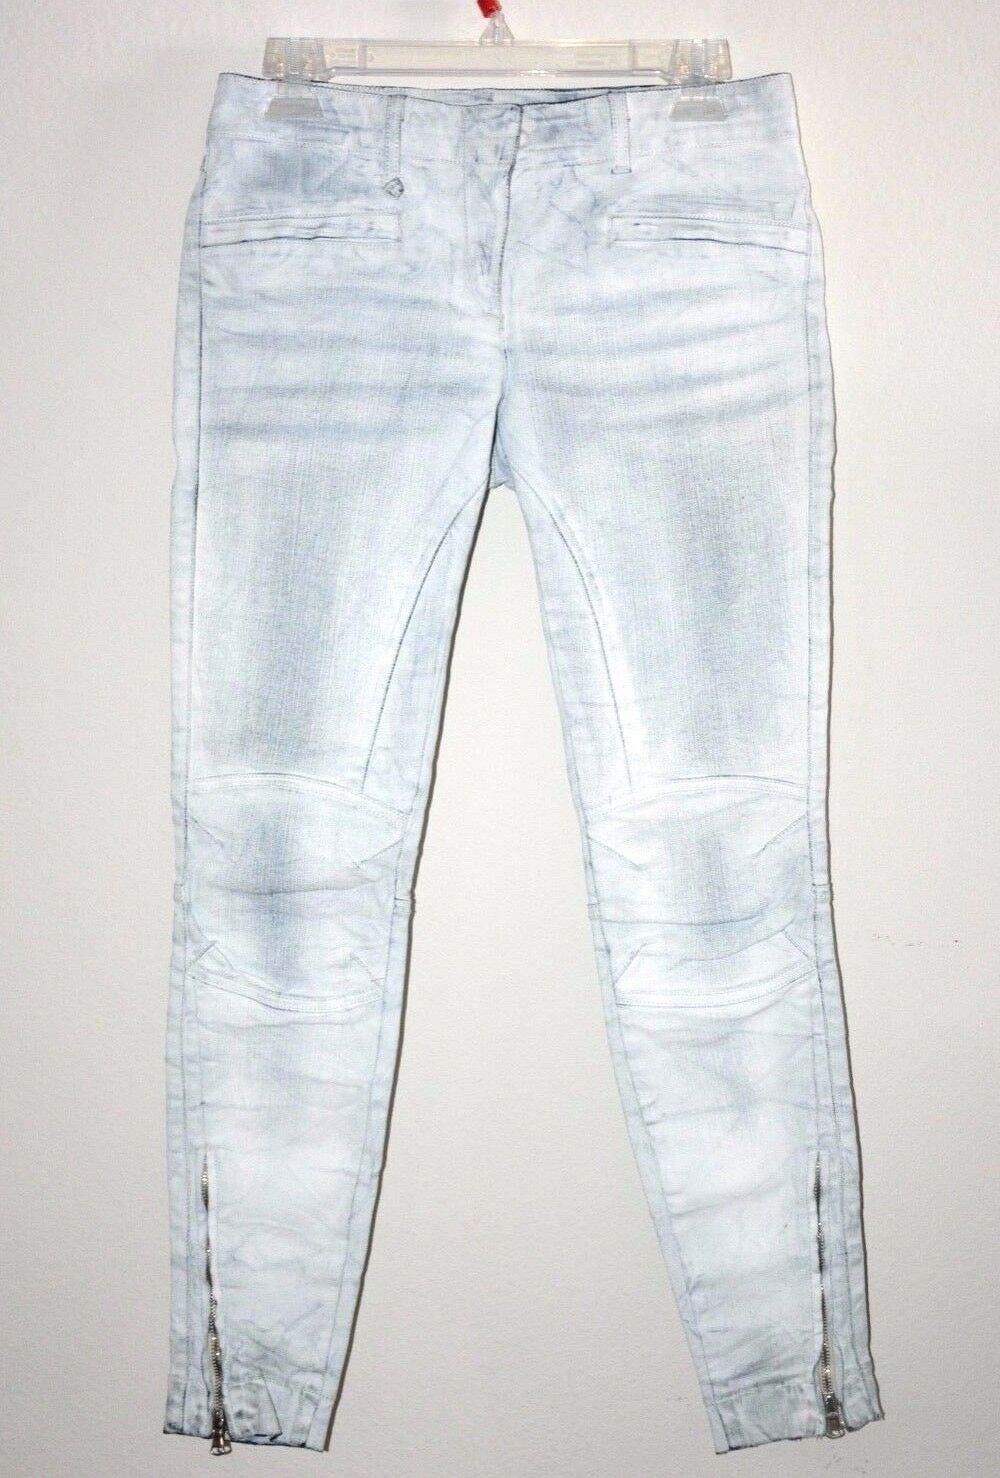 R13 Barneys vintage white painted ankle zip skinny jeans sz 26 RARE